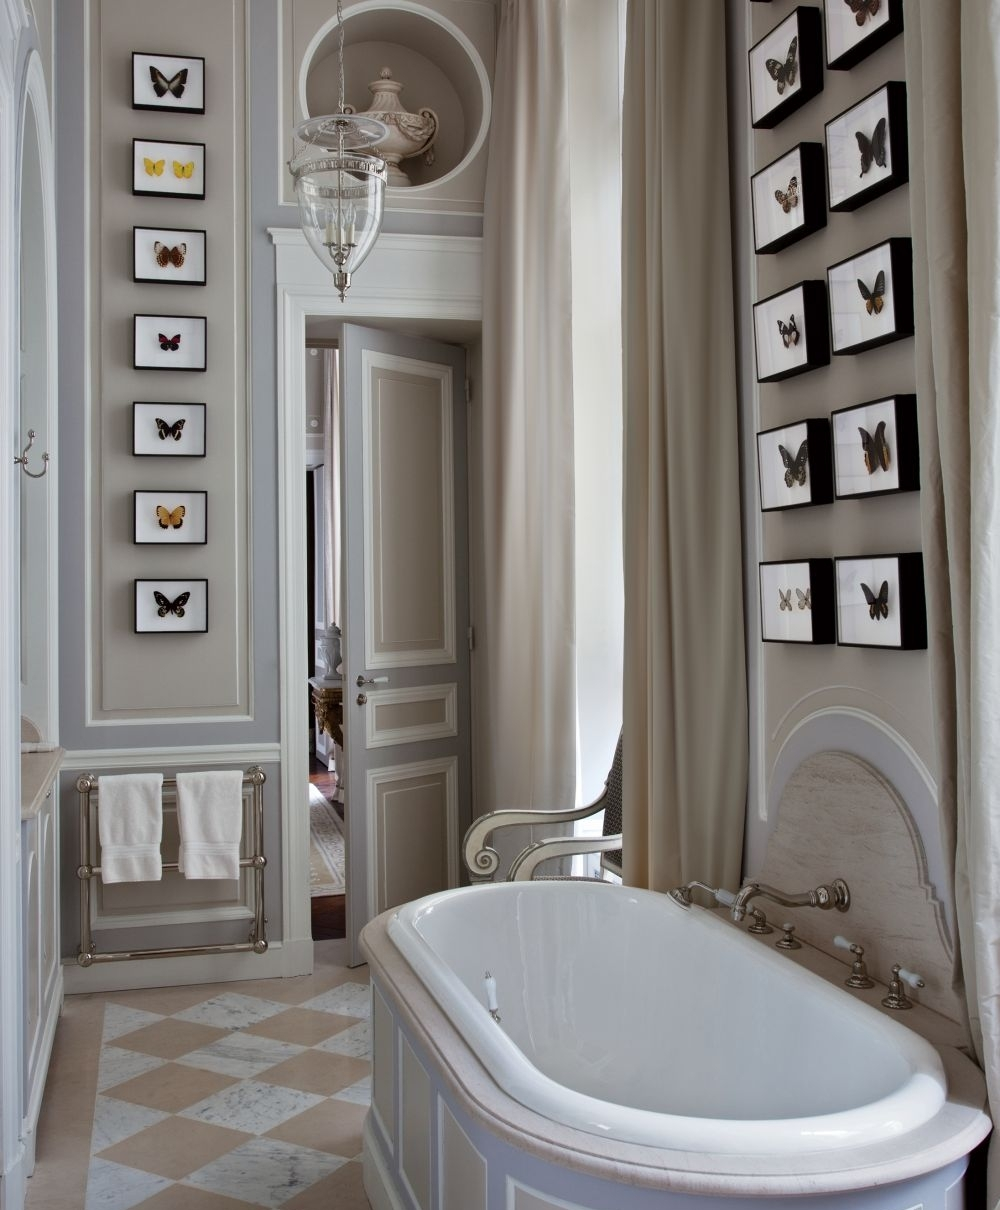 Home Design Ideas Bathroom: 25 Marvelous Traditional Bathroom Designs For Your Inspiration